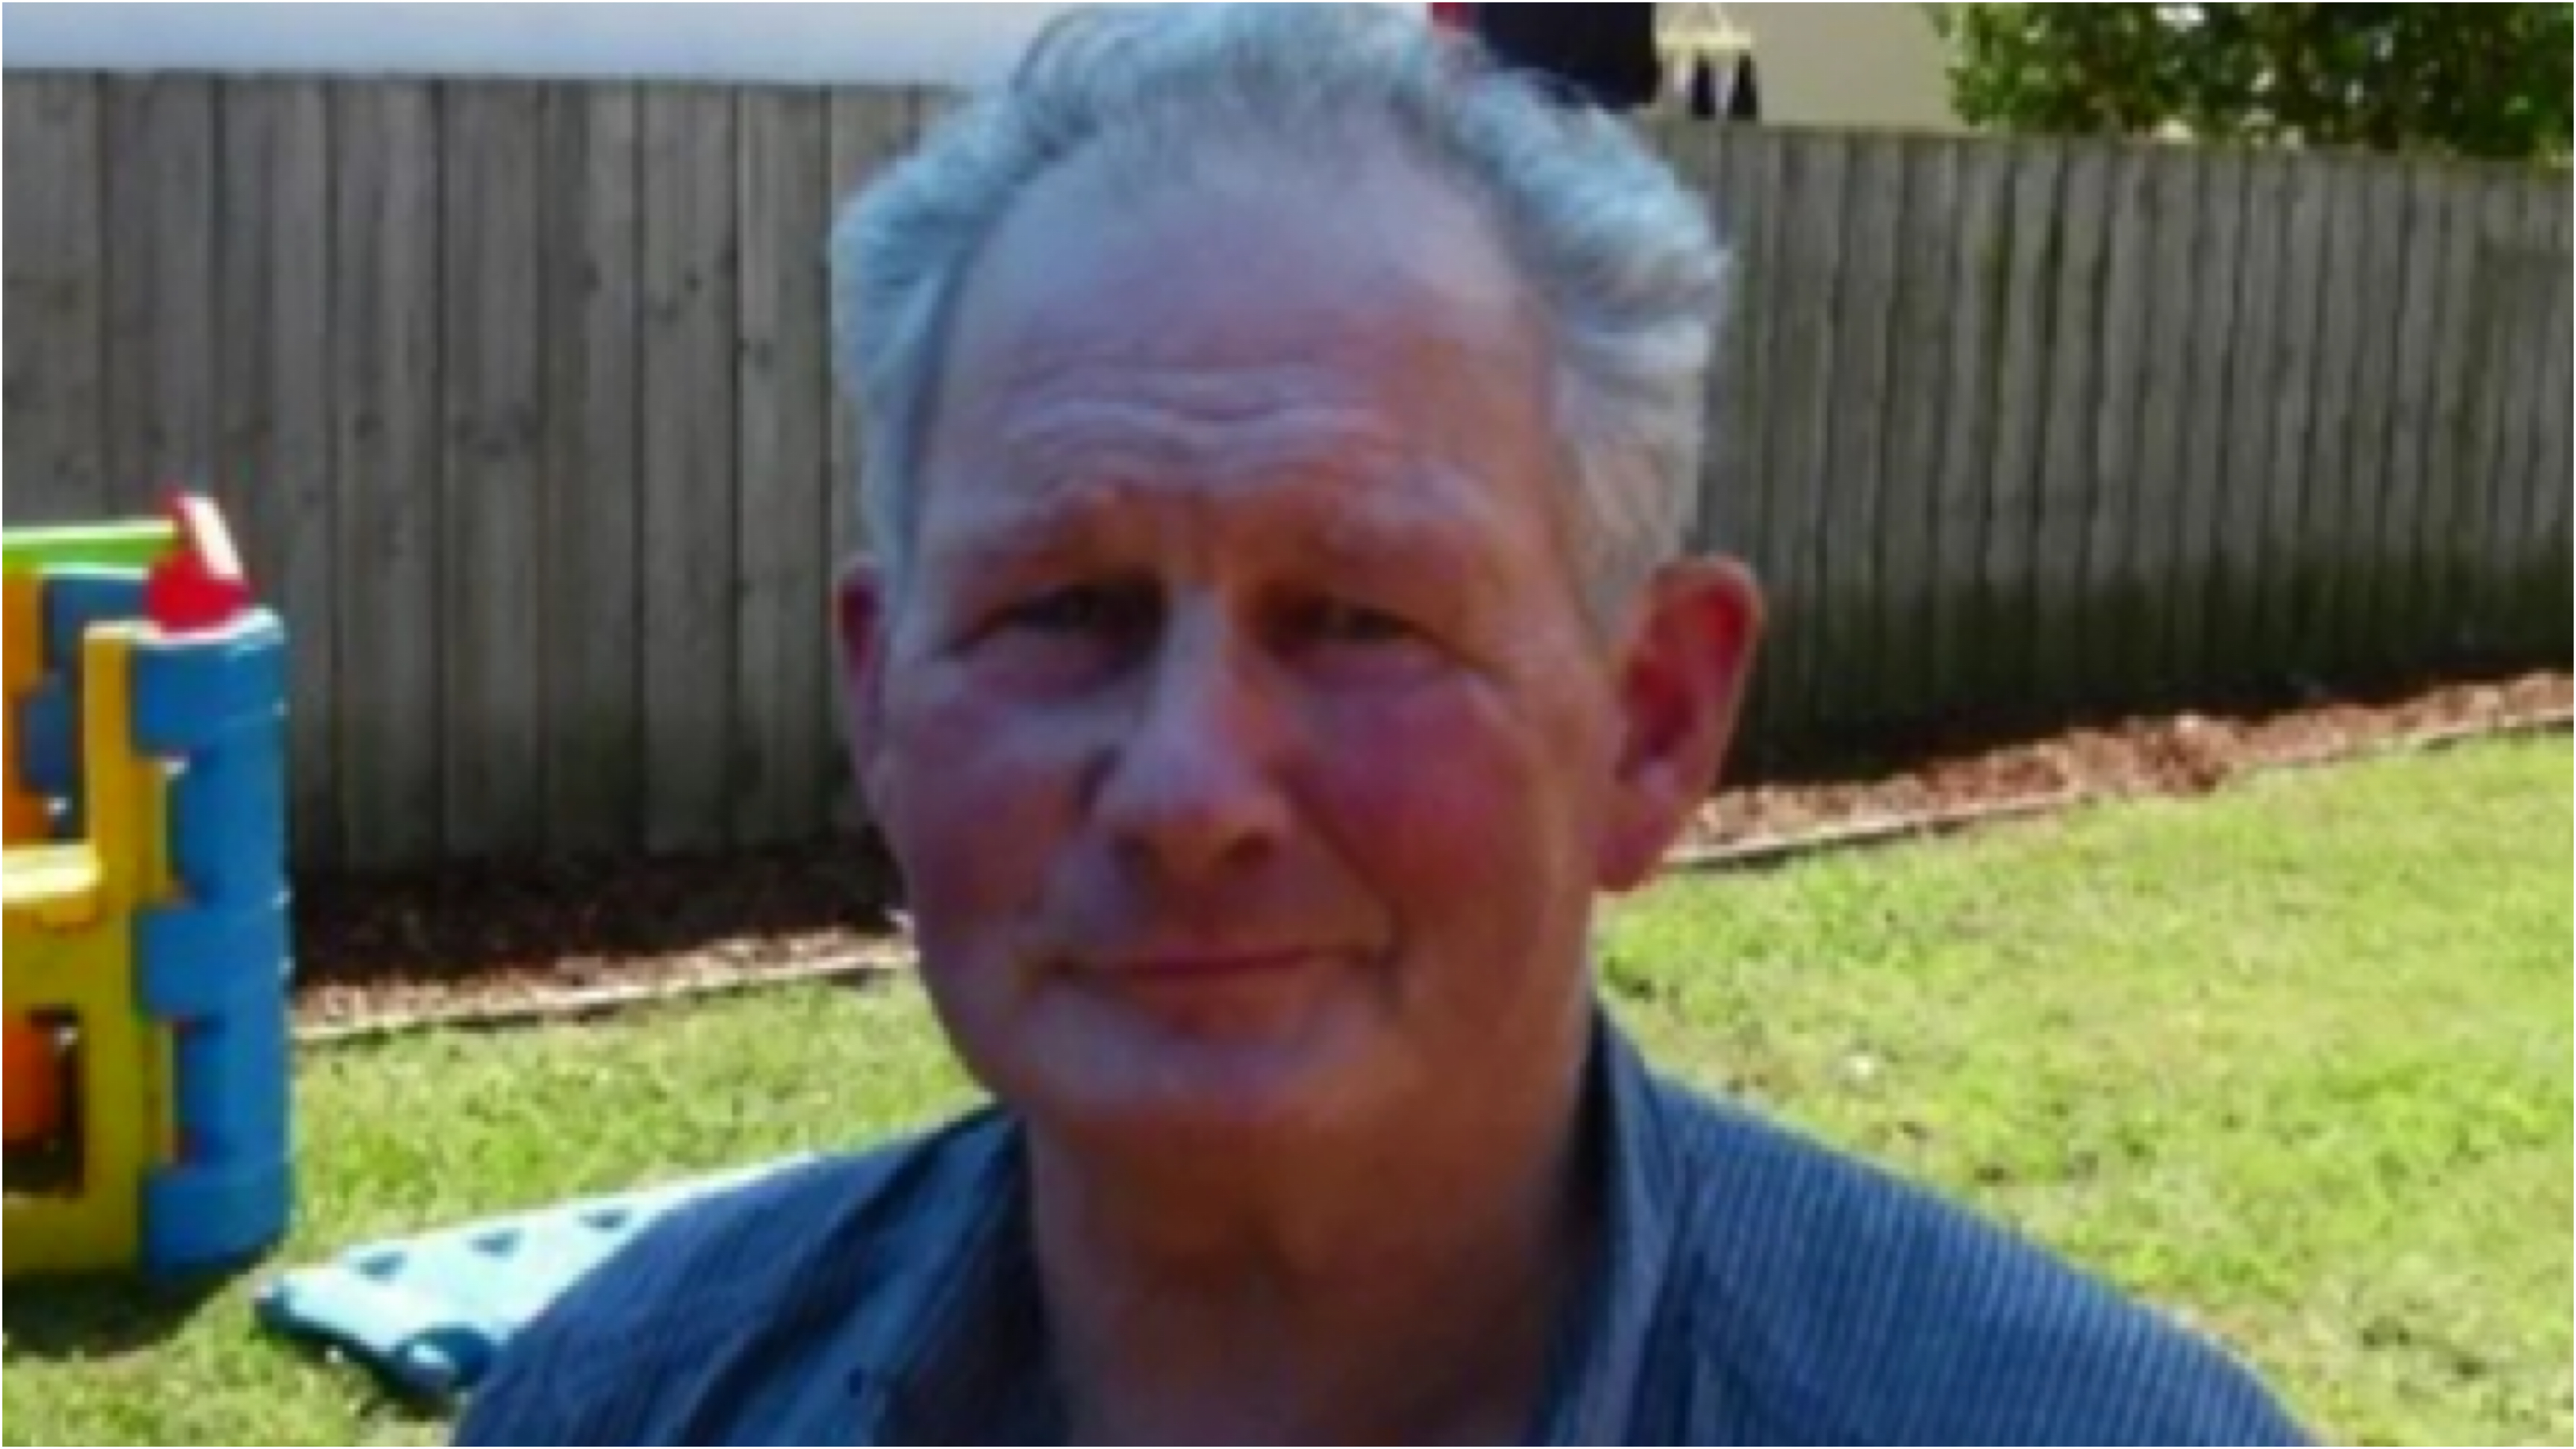 Much-loved grandfather killed in tragic house fire